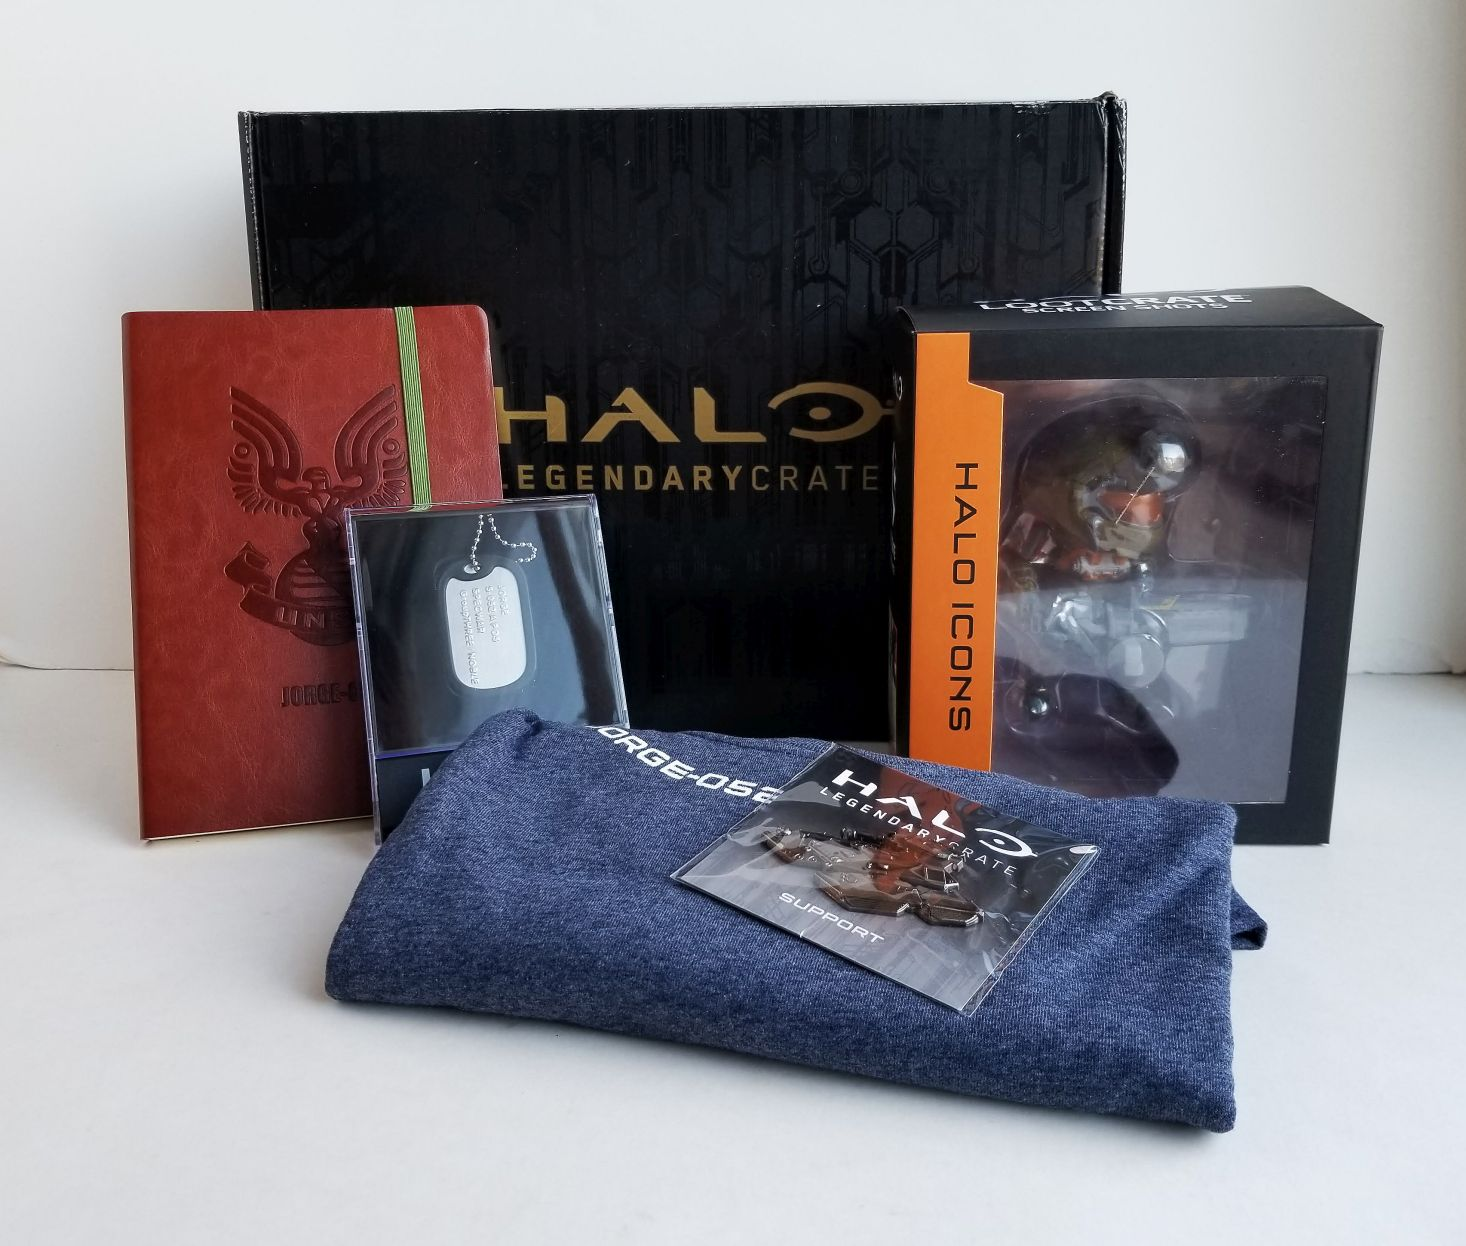 Halo Legendary Crate Subscription Box Review + Coupon –  December 2018